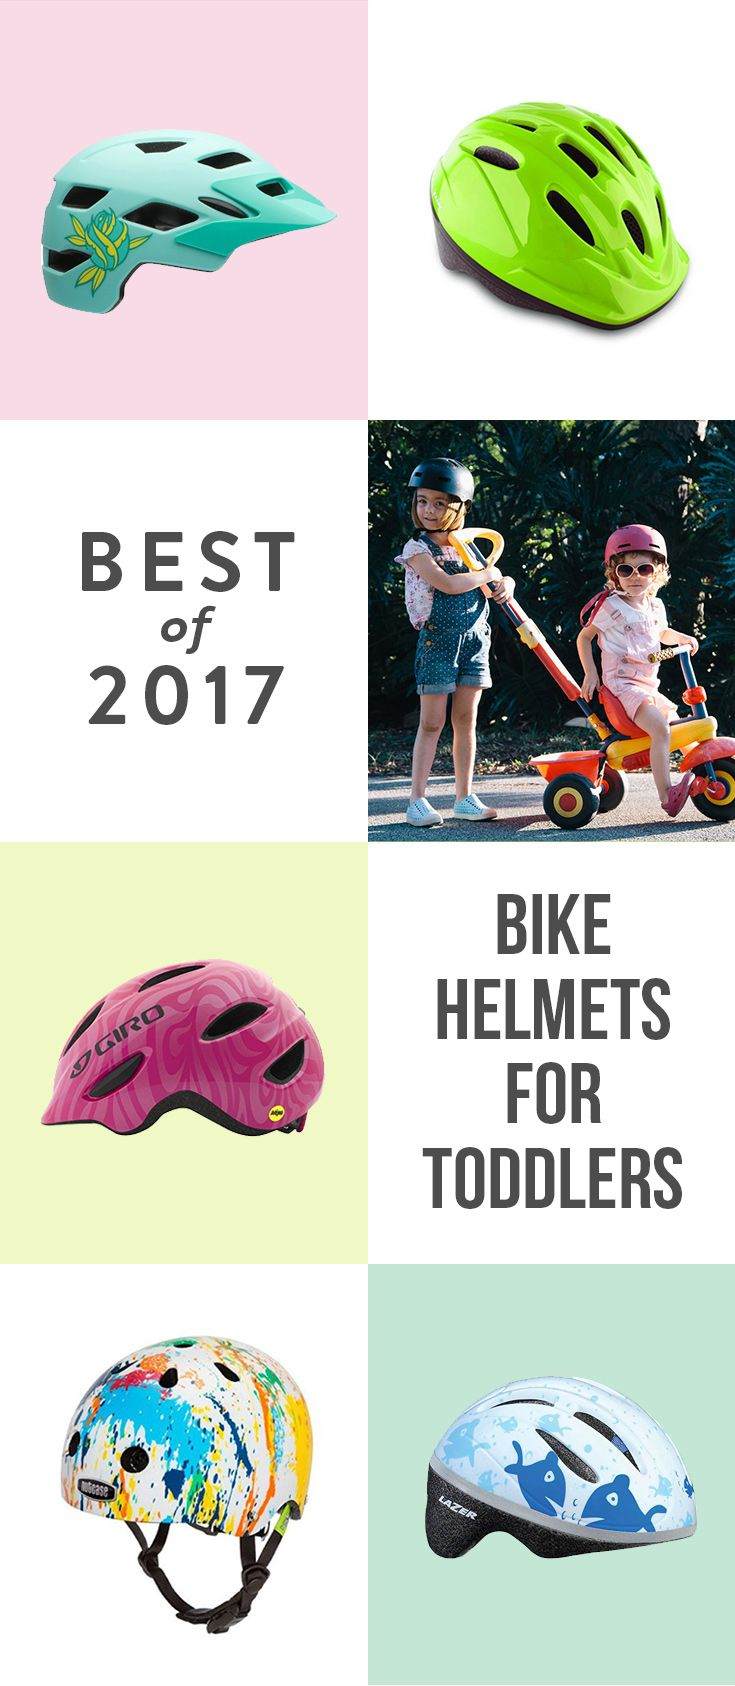 Whether hopping on a seat on your bike or on their own two wheels, these five bike helmets will keep your tot safe and cool this summer.